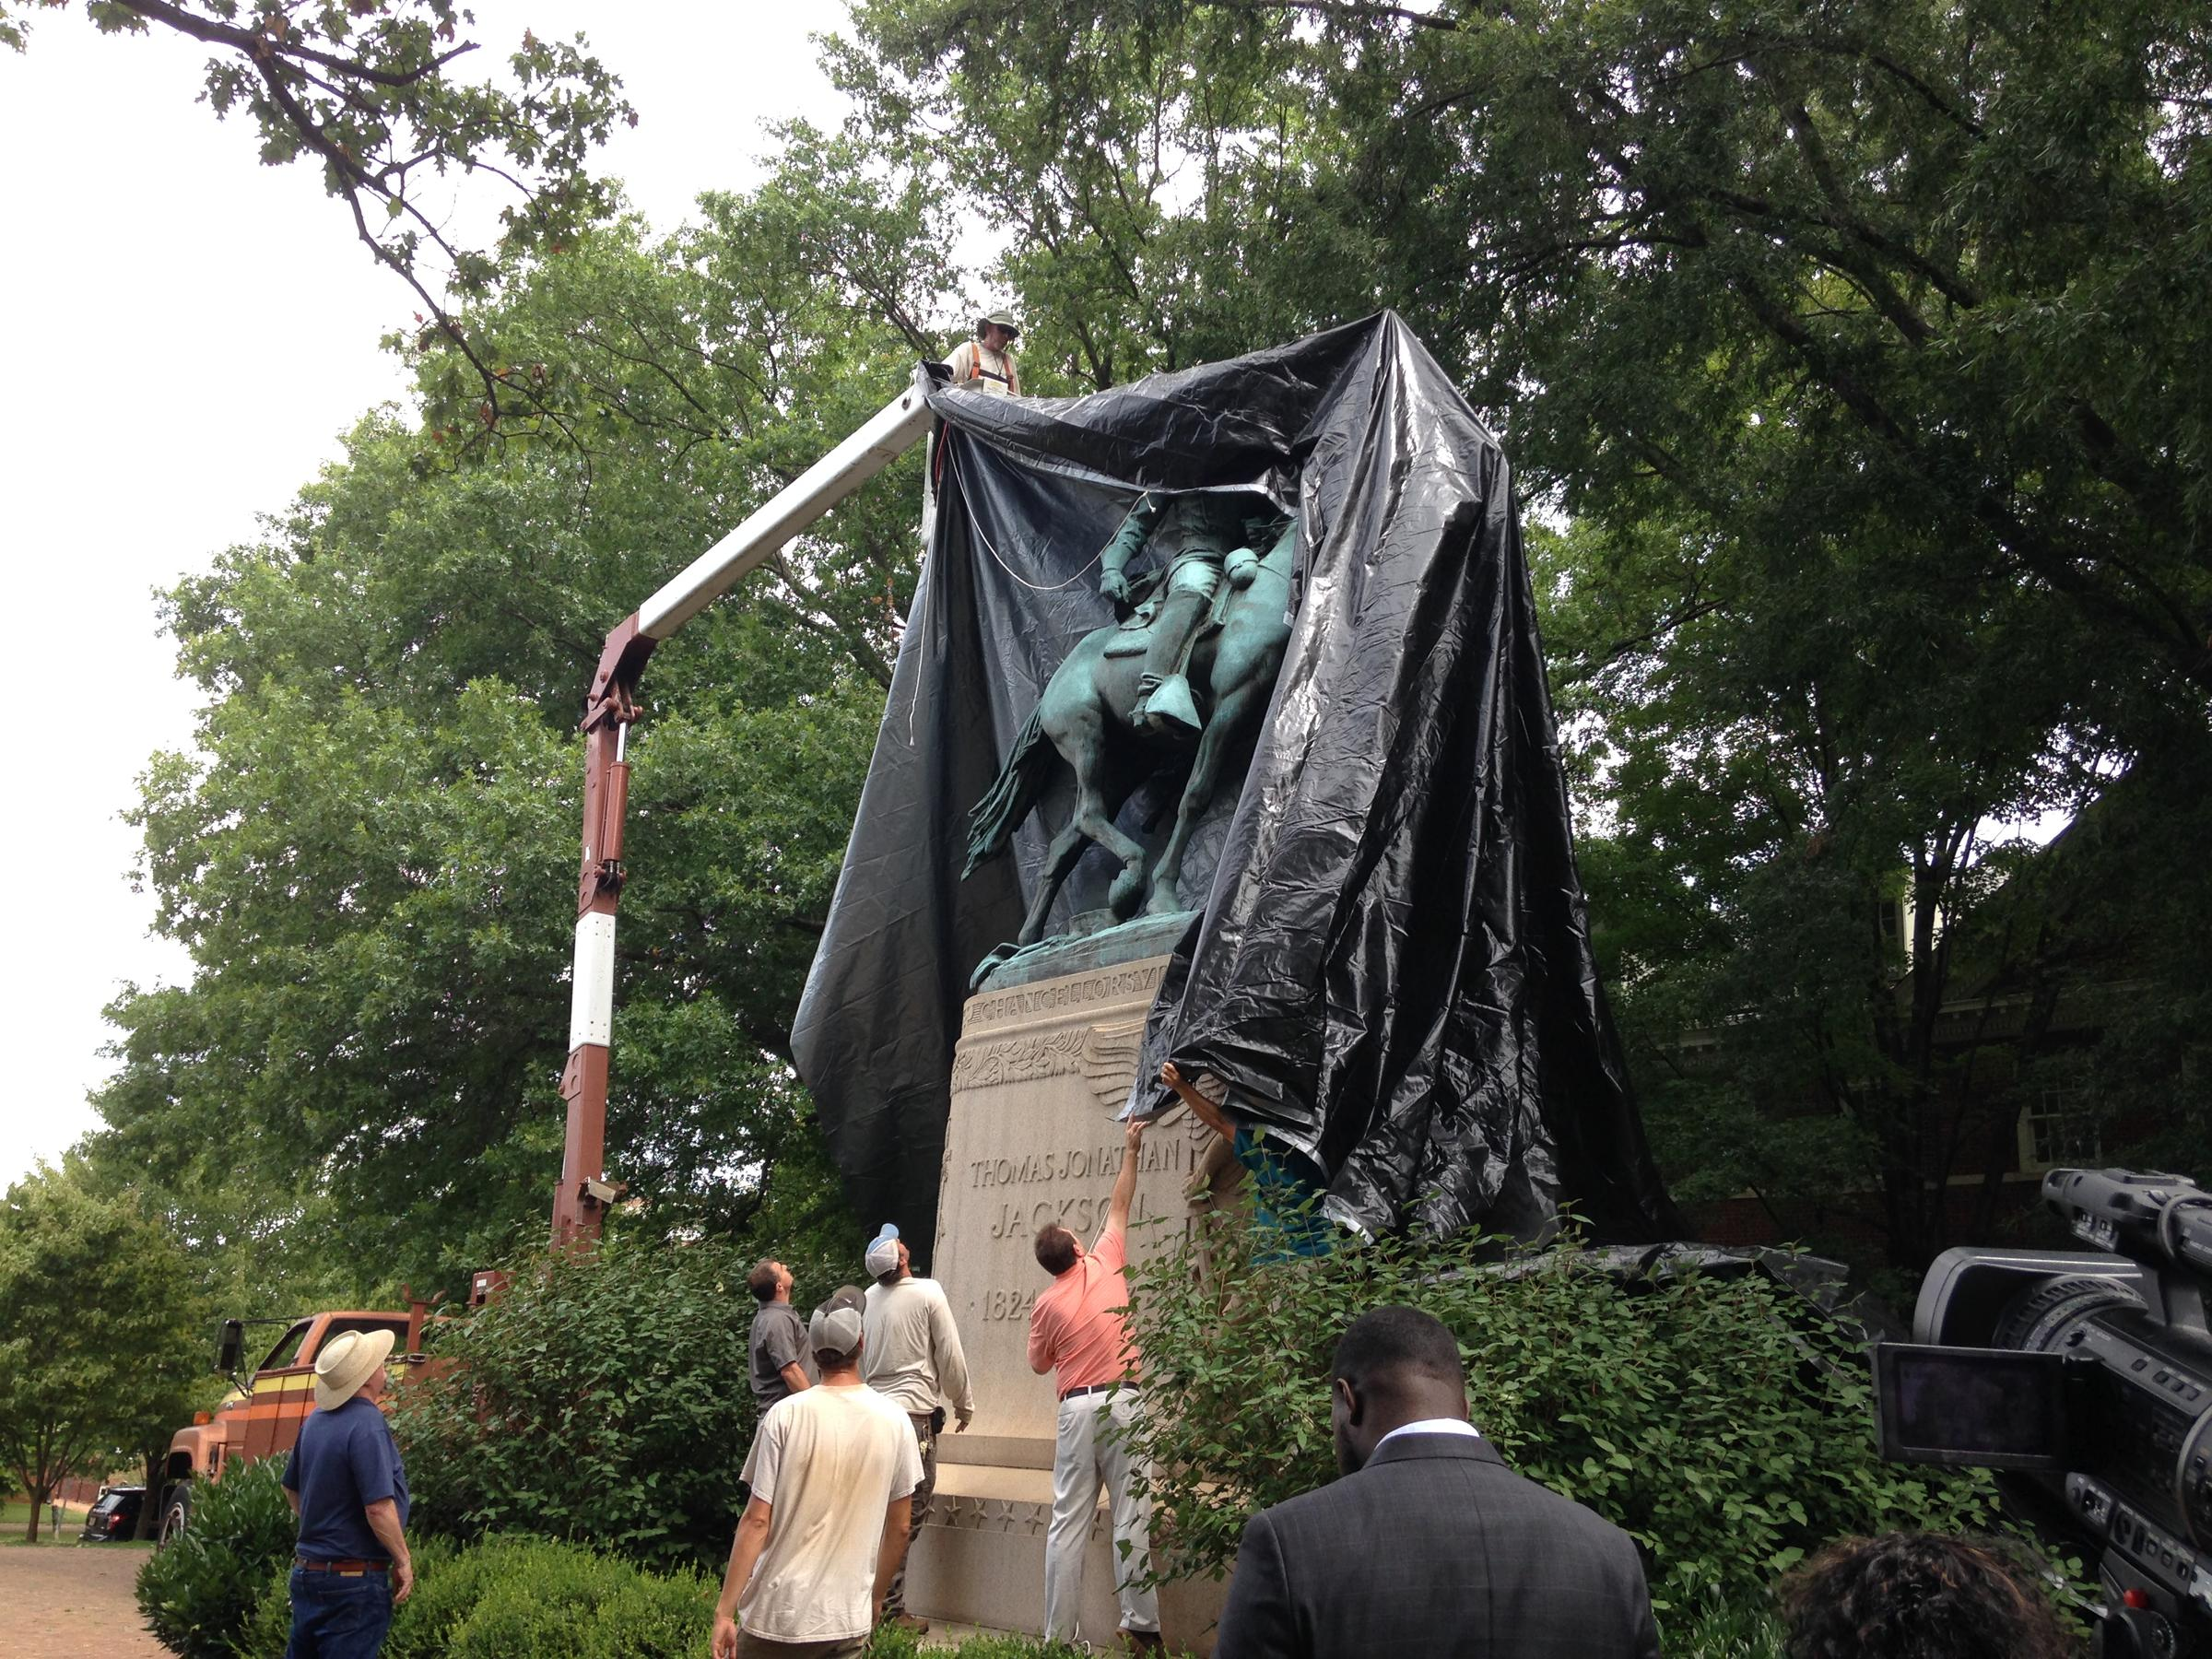 Judge calls for removal of tarps from Charlottesville's Confederate statues